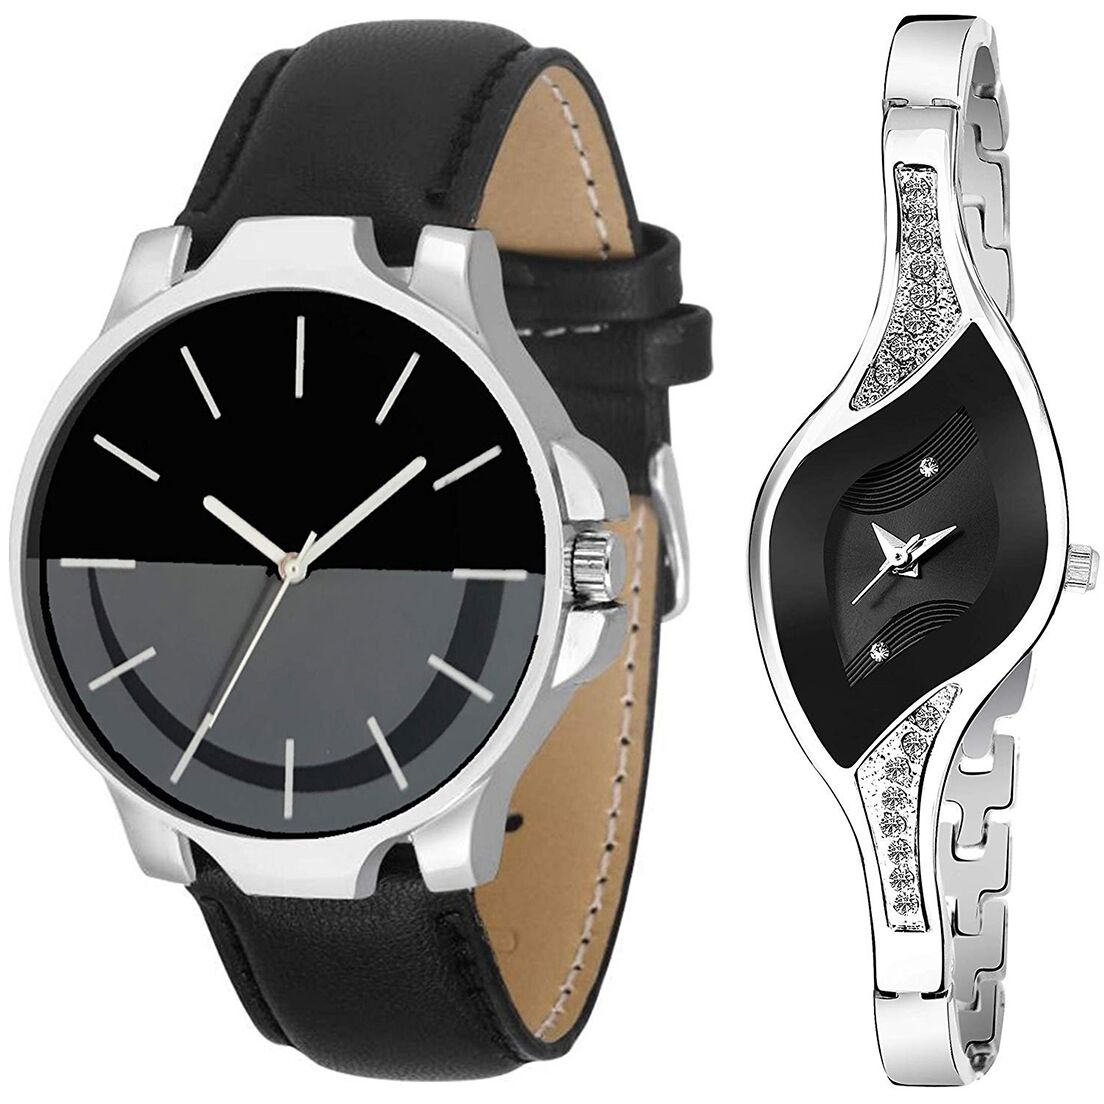 SENJARYA TIMES Black Dial Fancy Couple Watch For New Lovers DR104